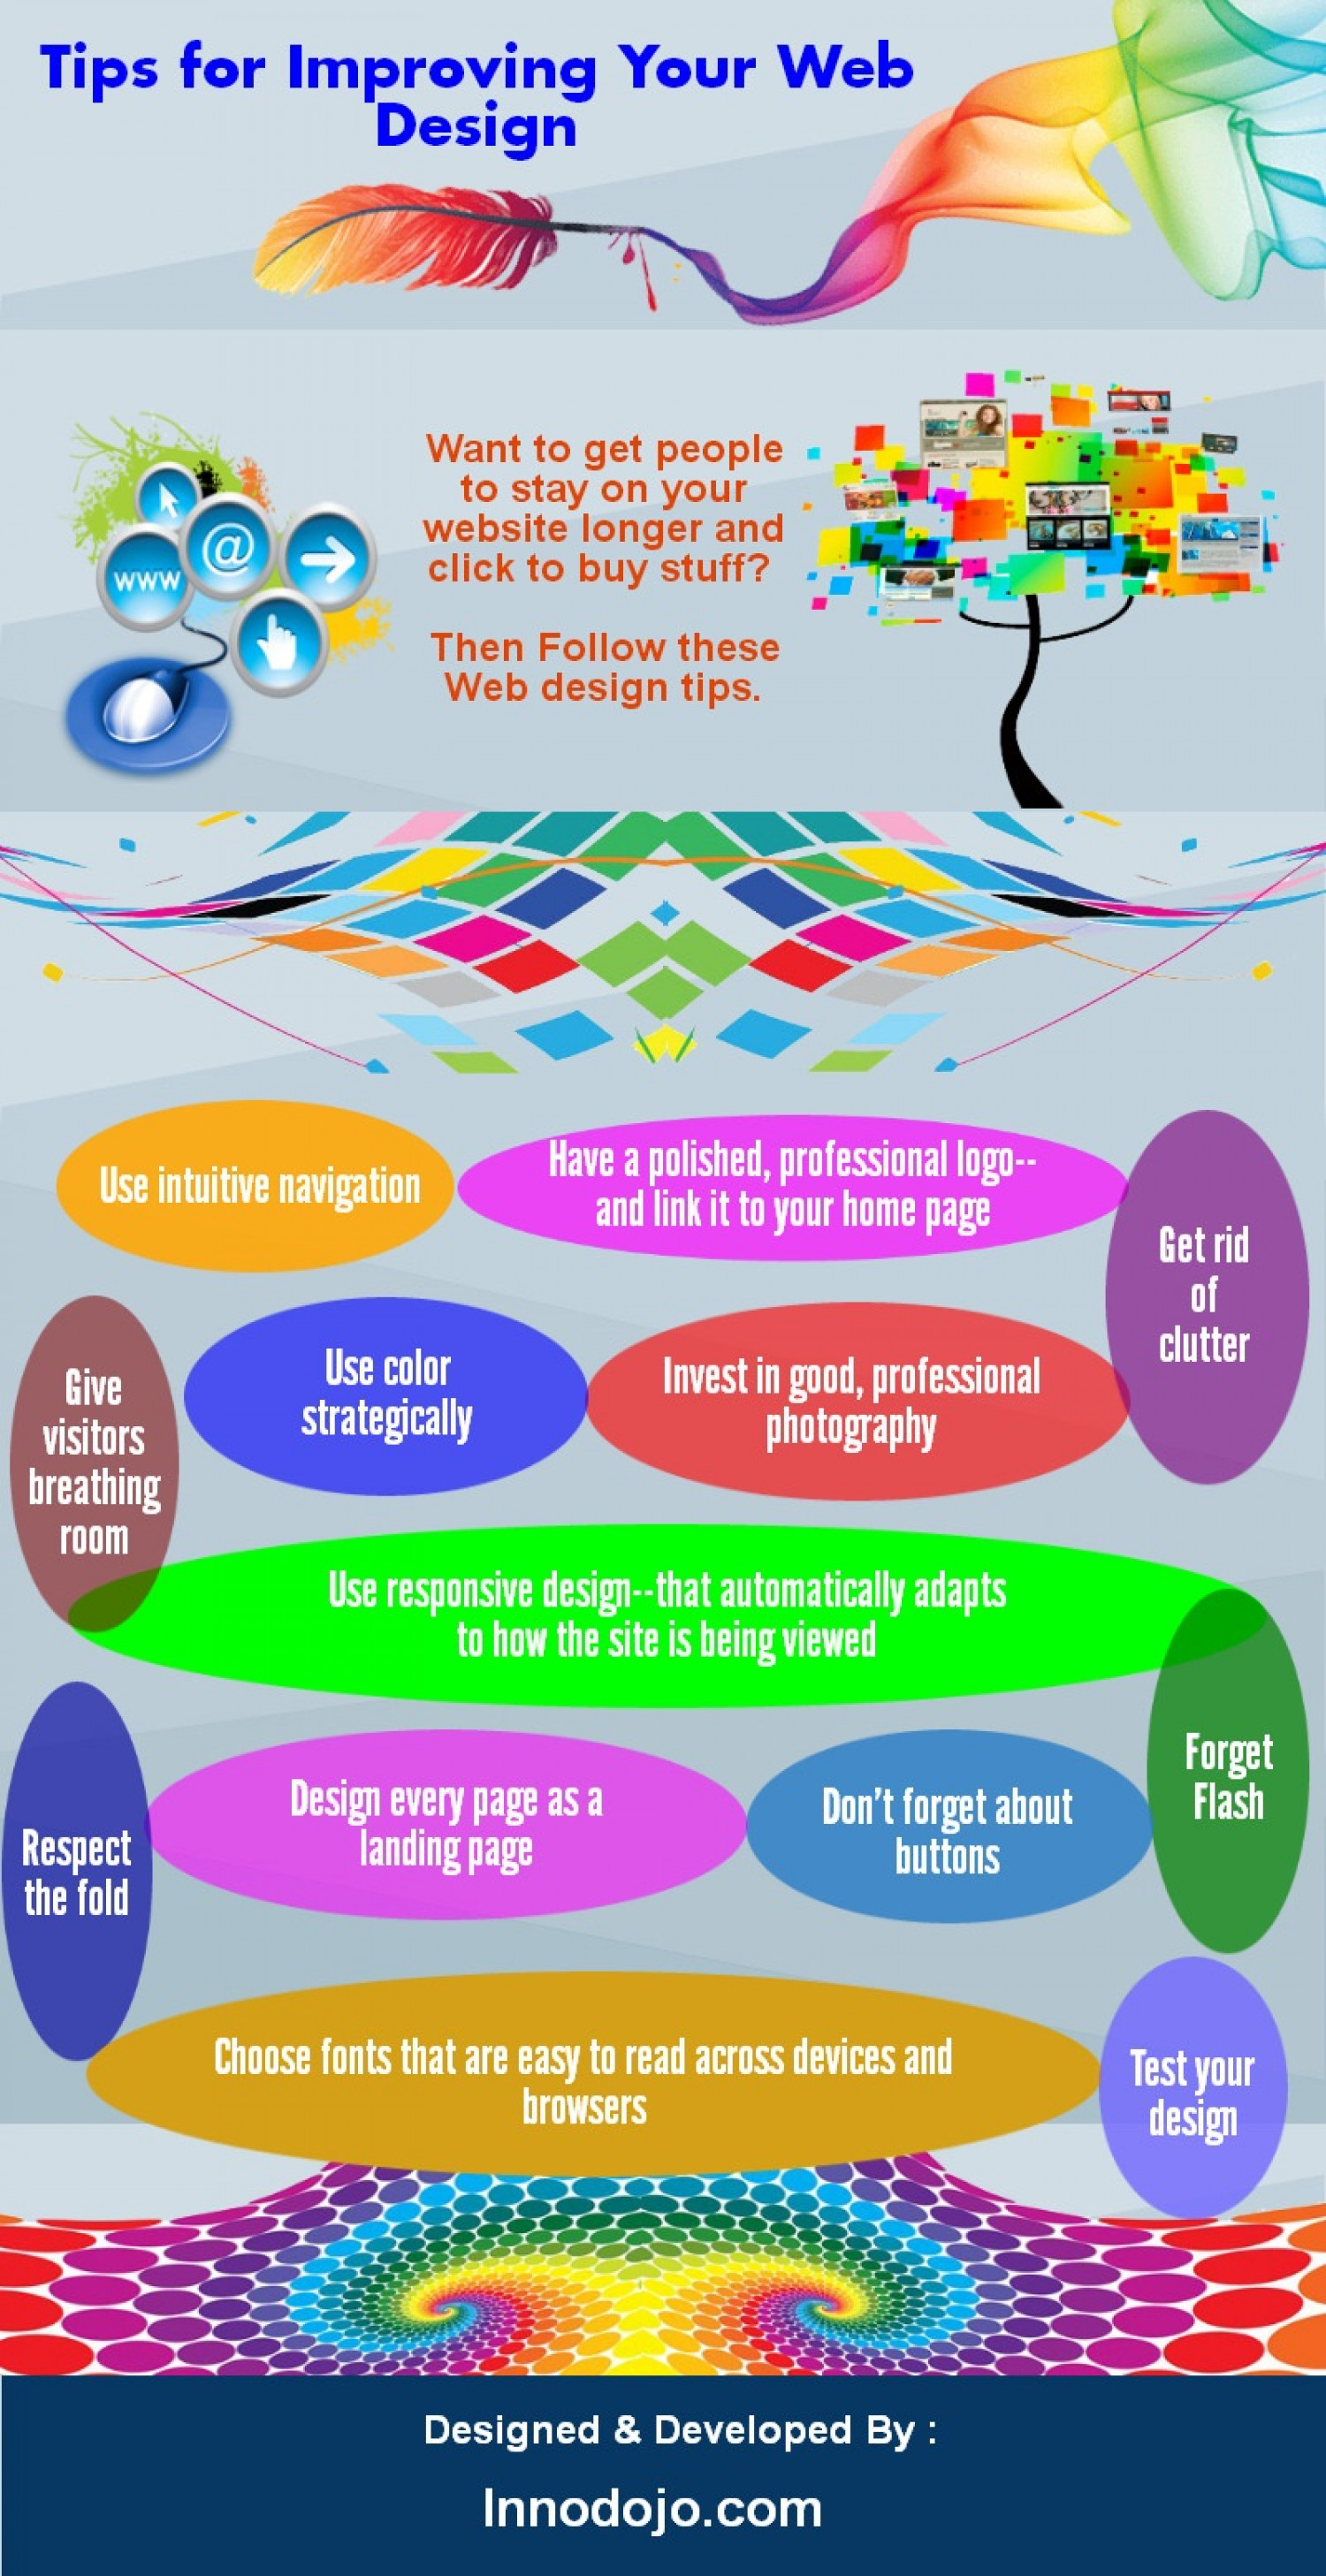 Tips for Improving Your Web Design Infographic